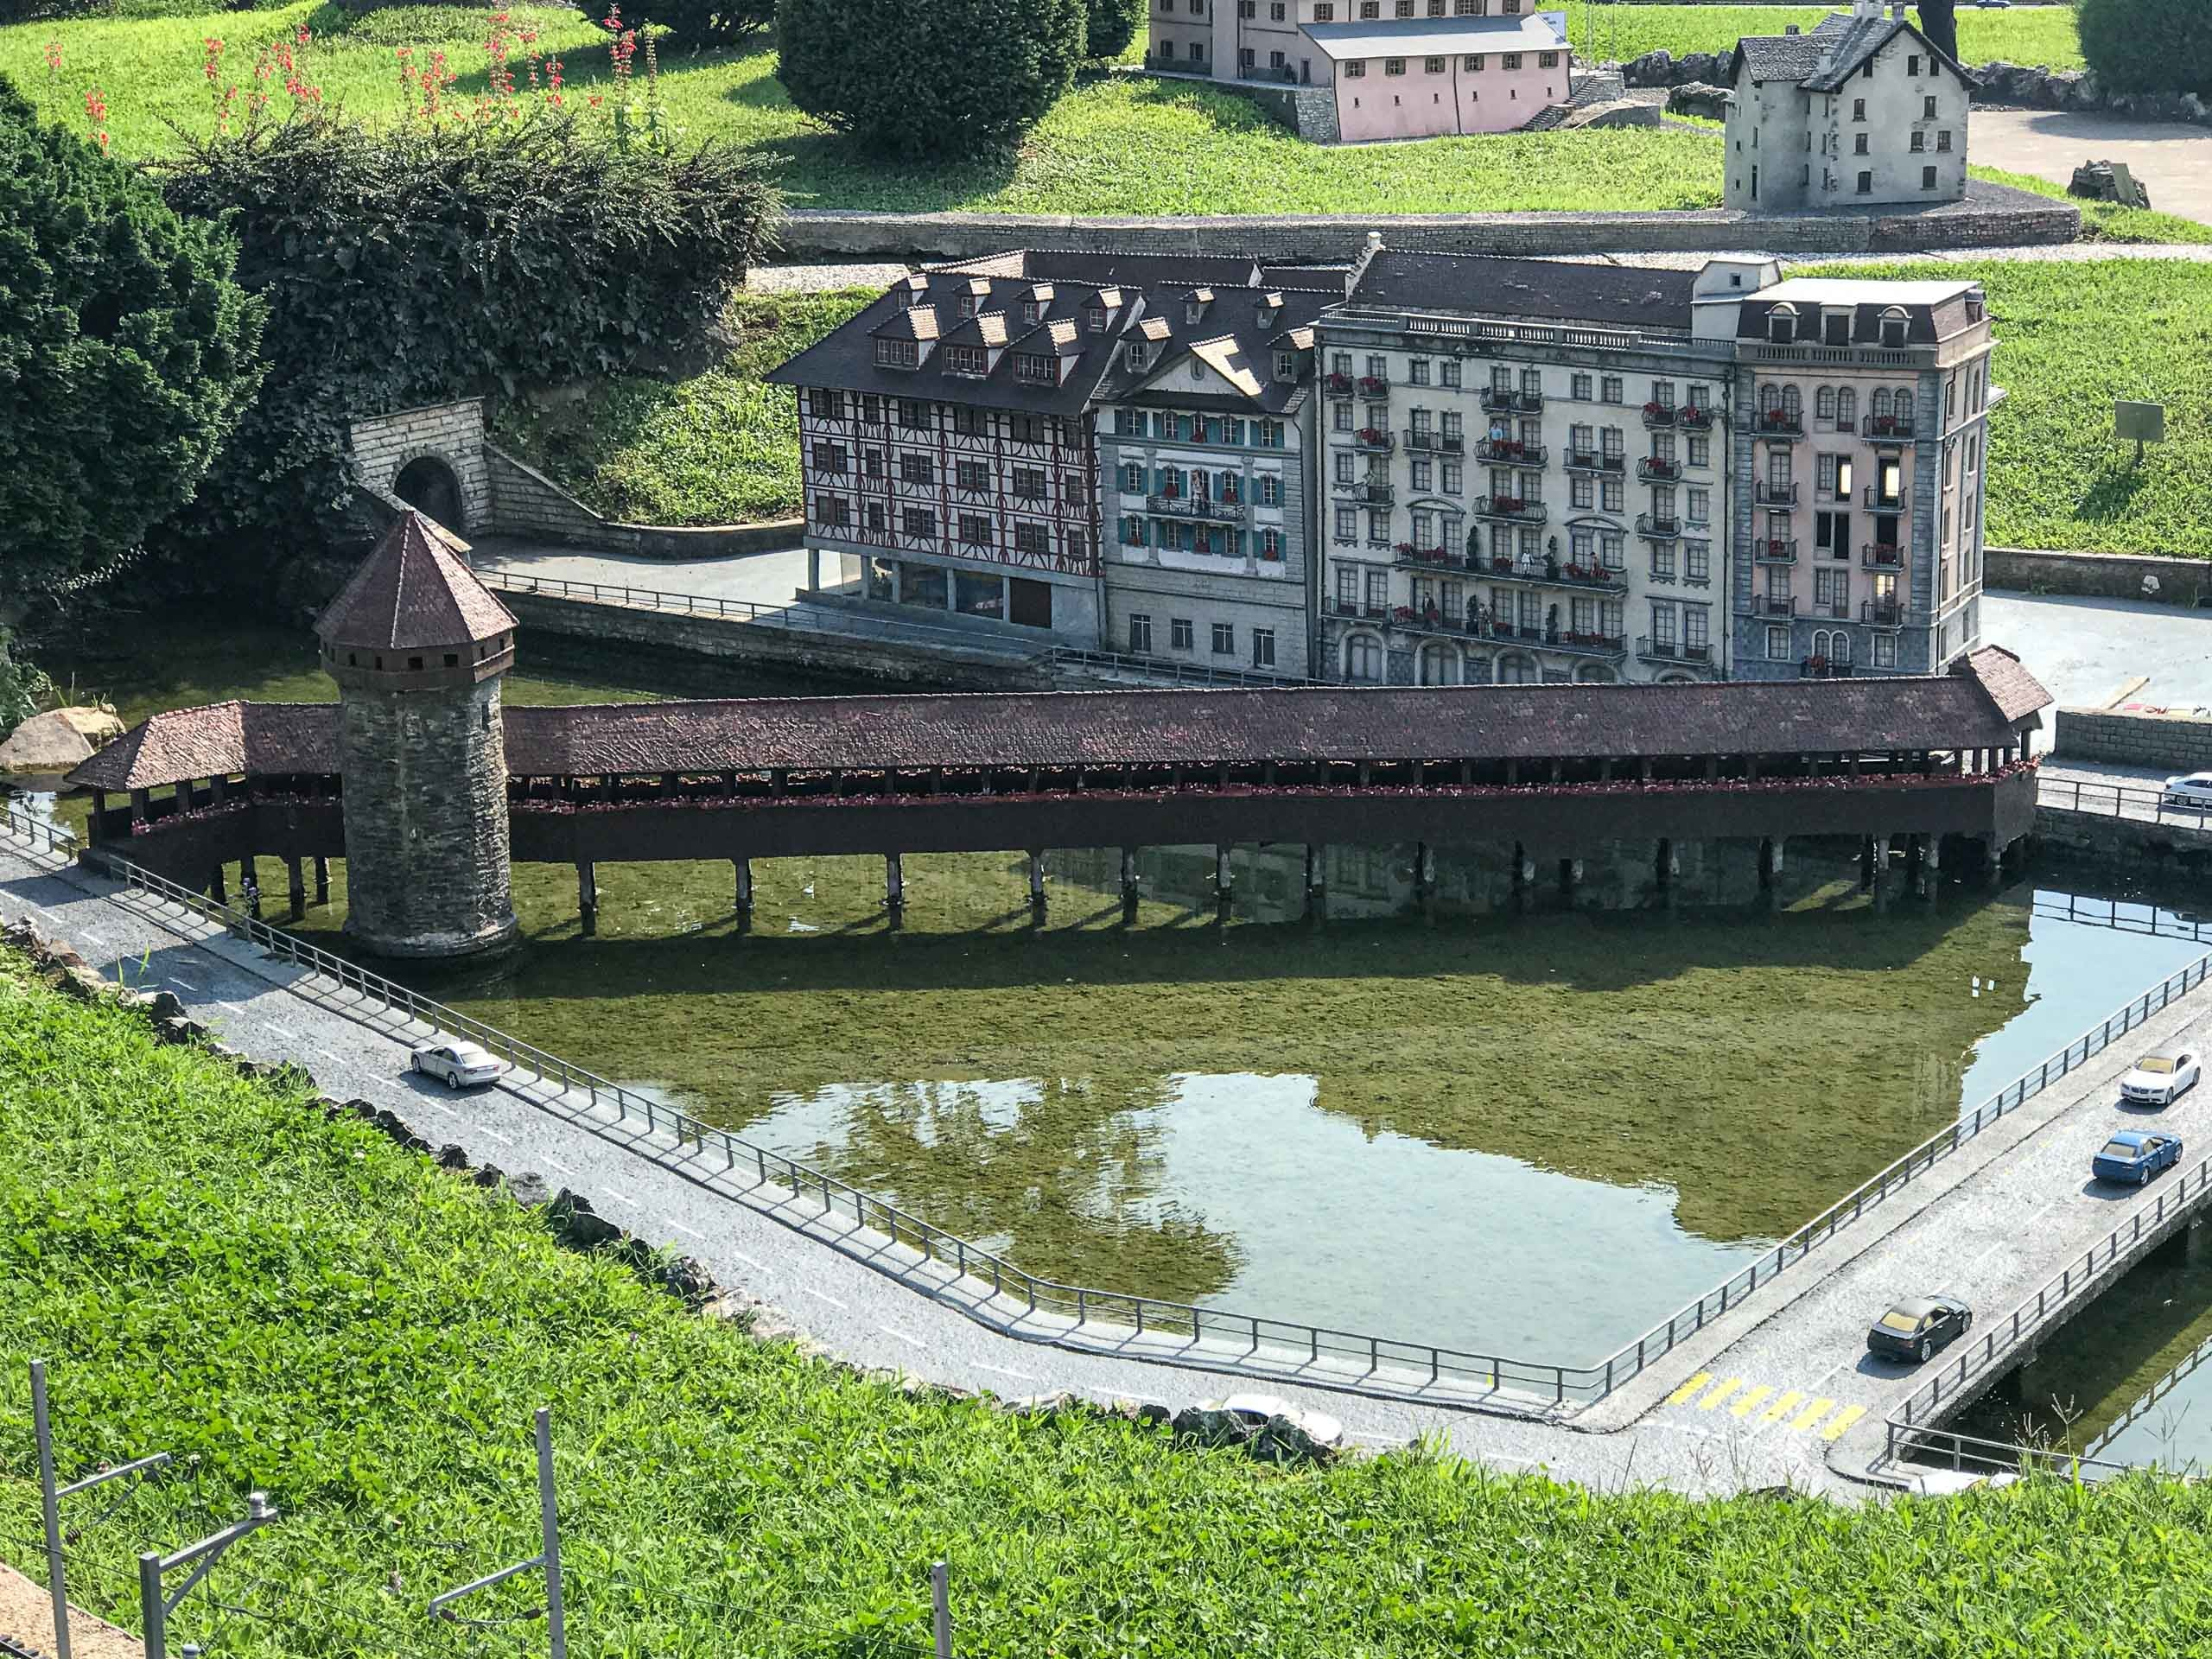 Model of the Chapel Bridge in Lucerne